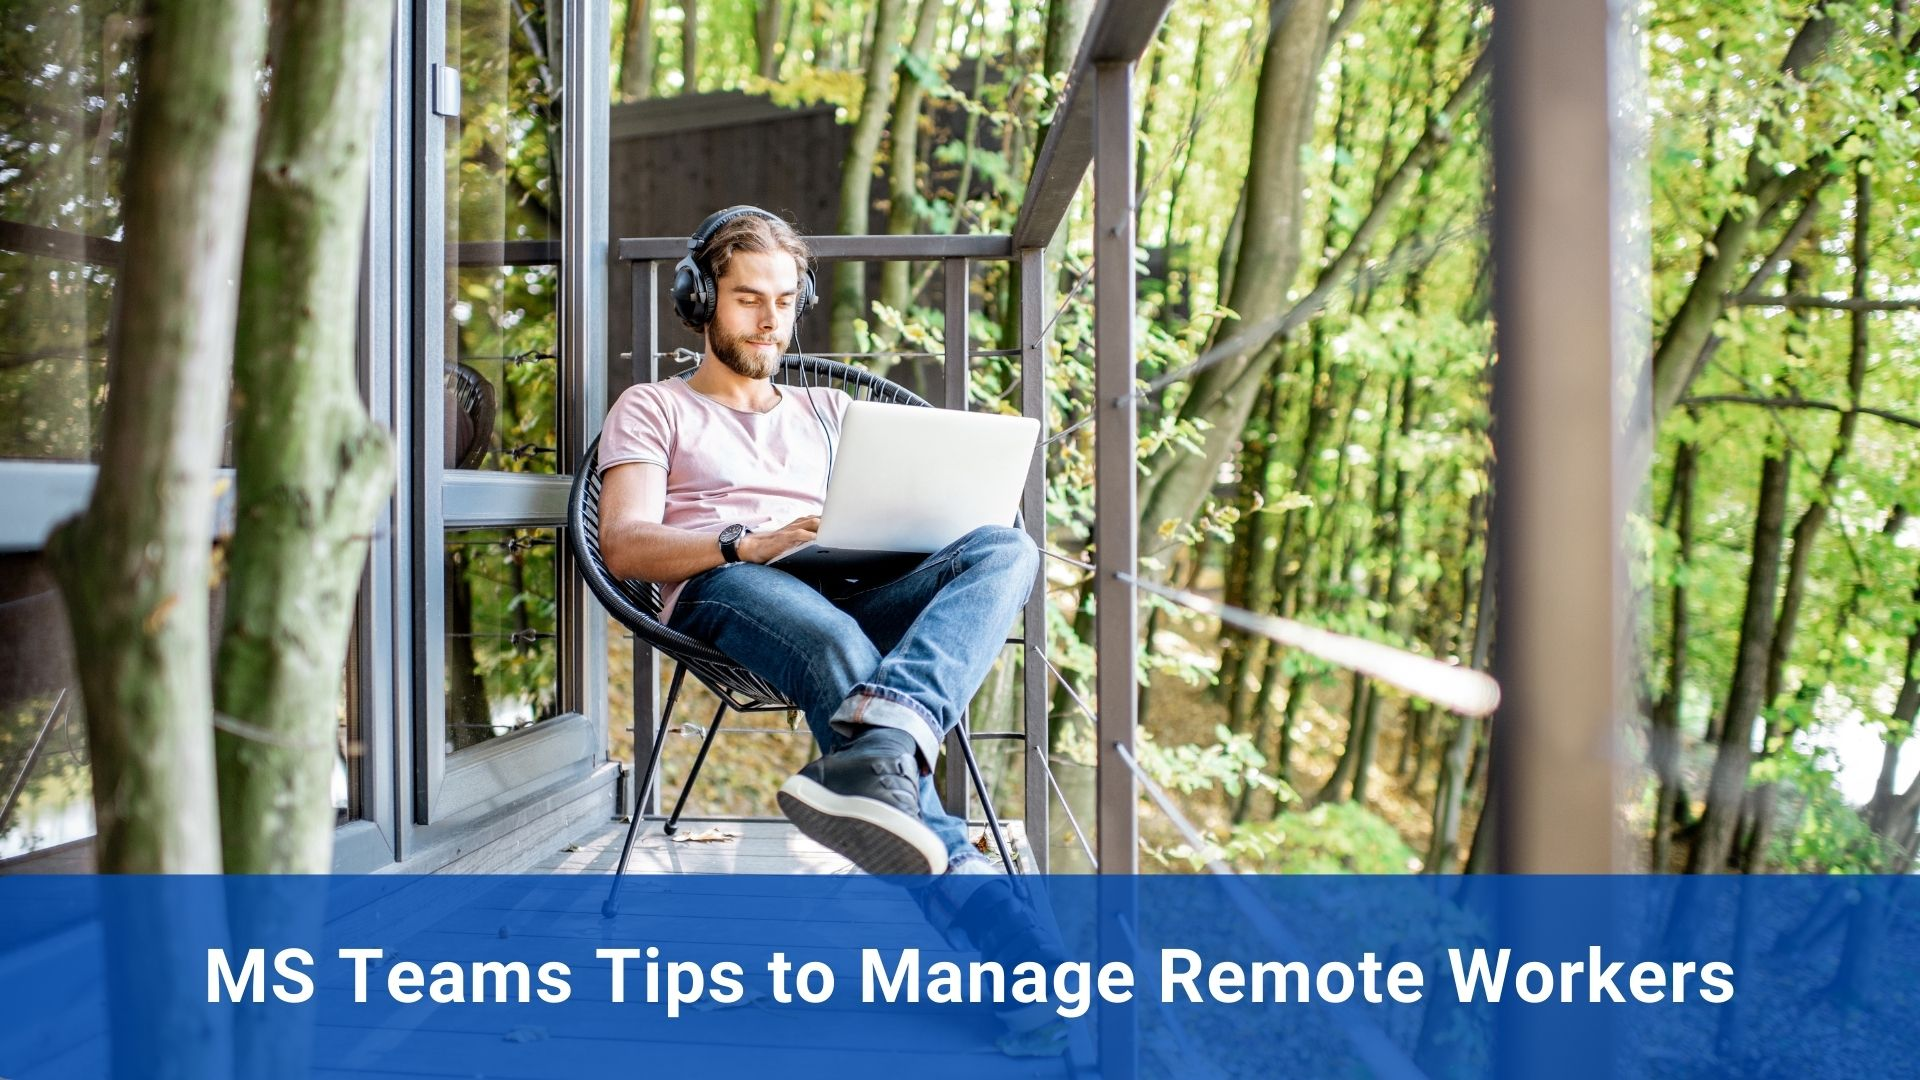 MS Teams Tips to Manage Remote Workers